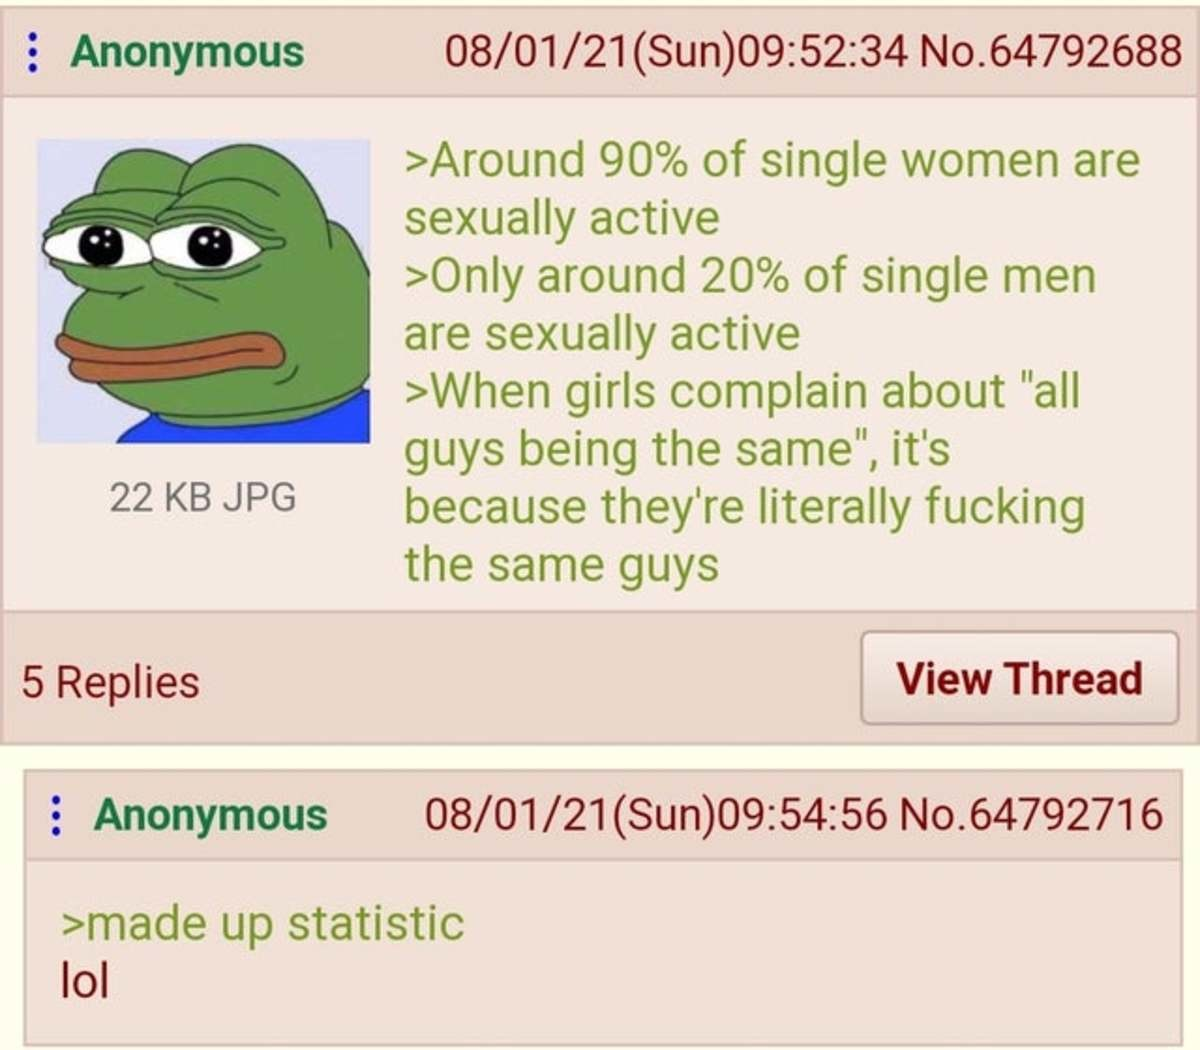 Anon and Statistics. .. yeah no those stats sound right